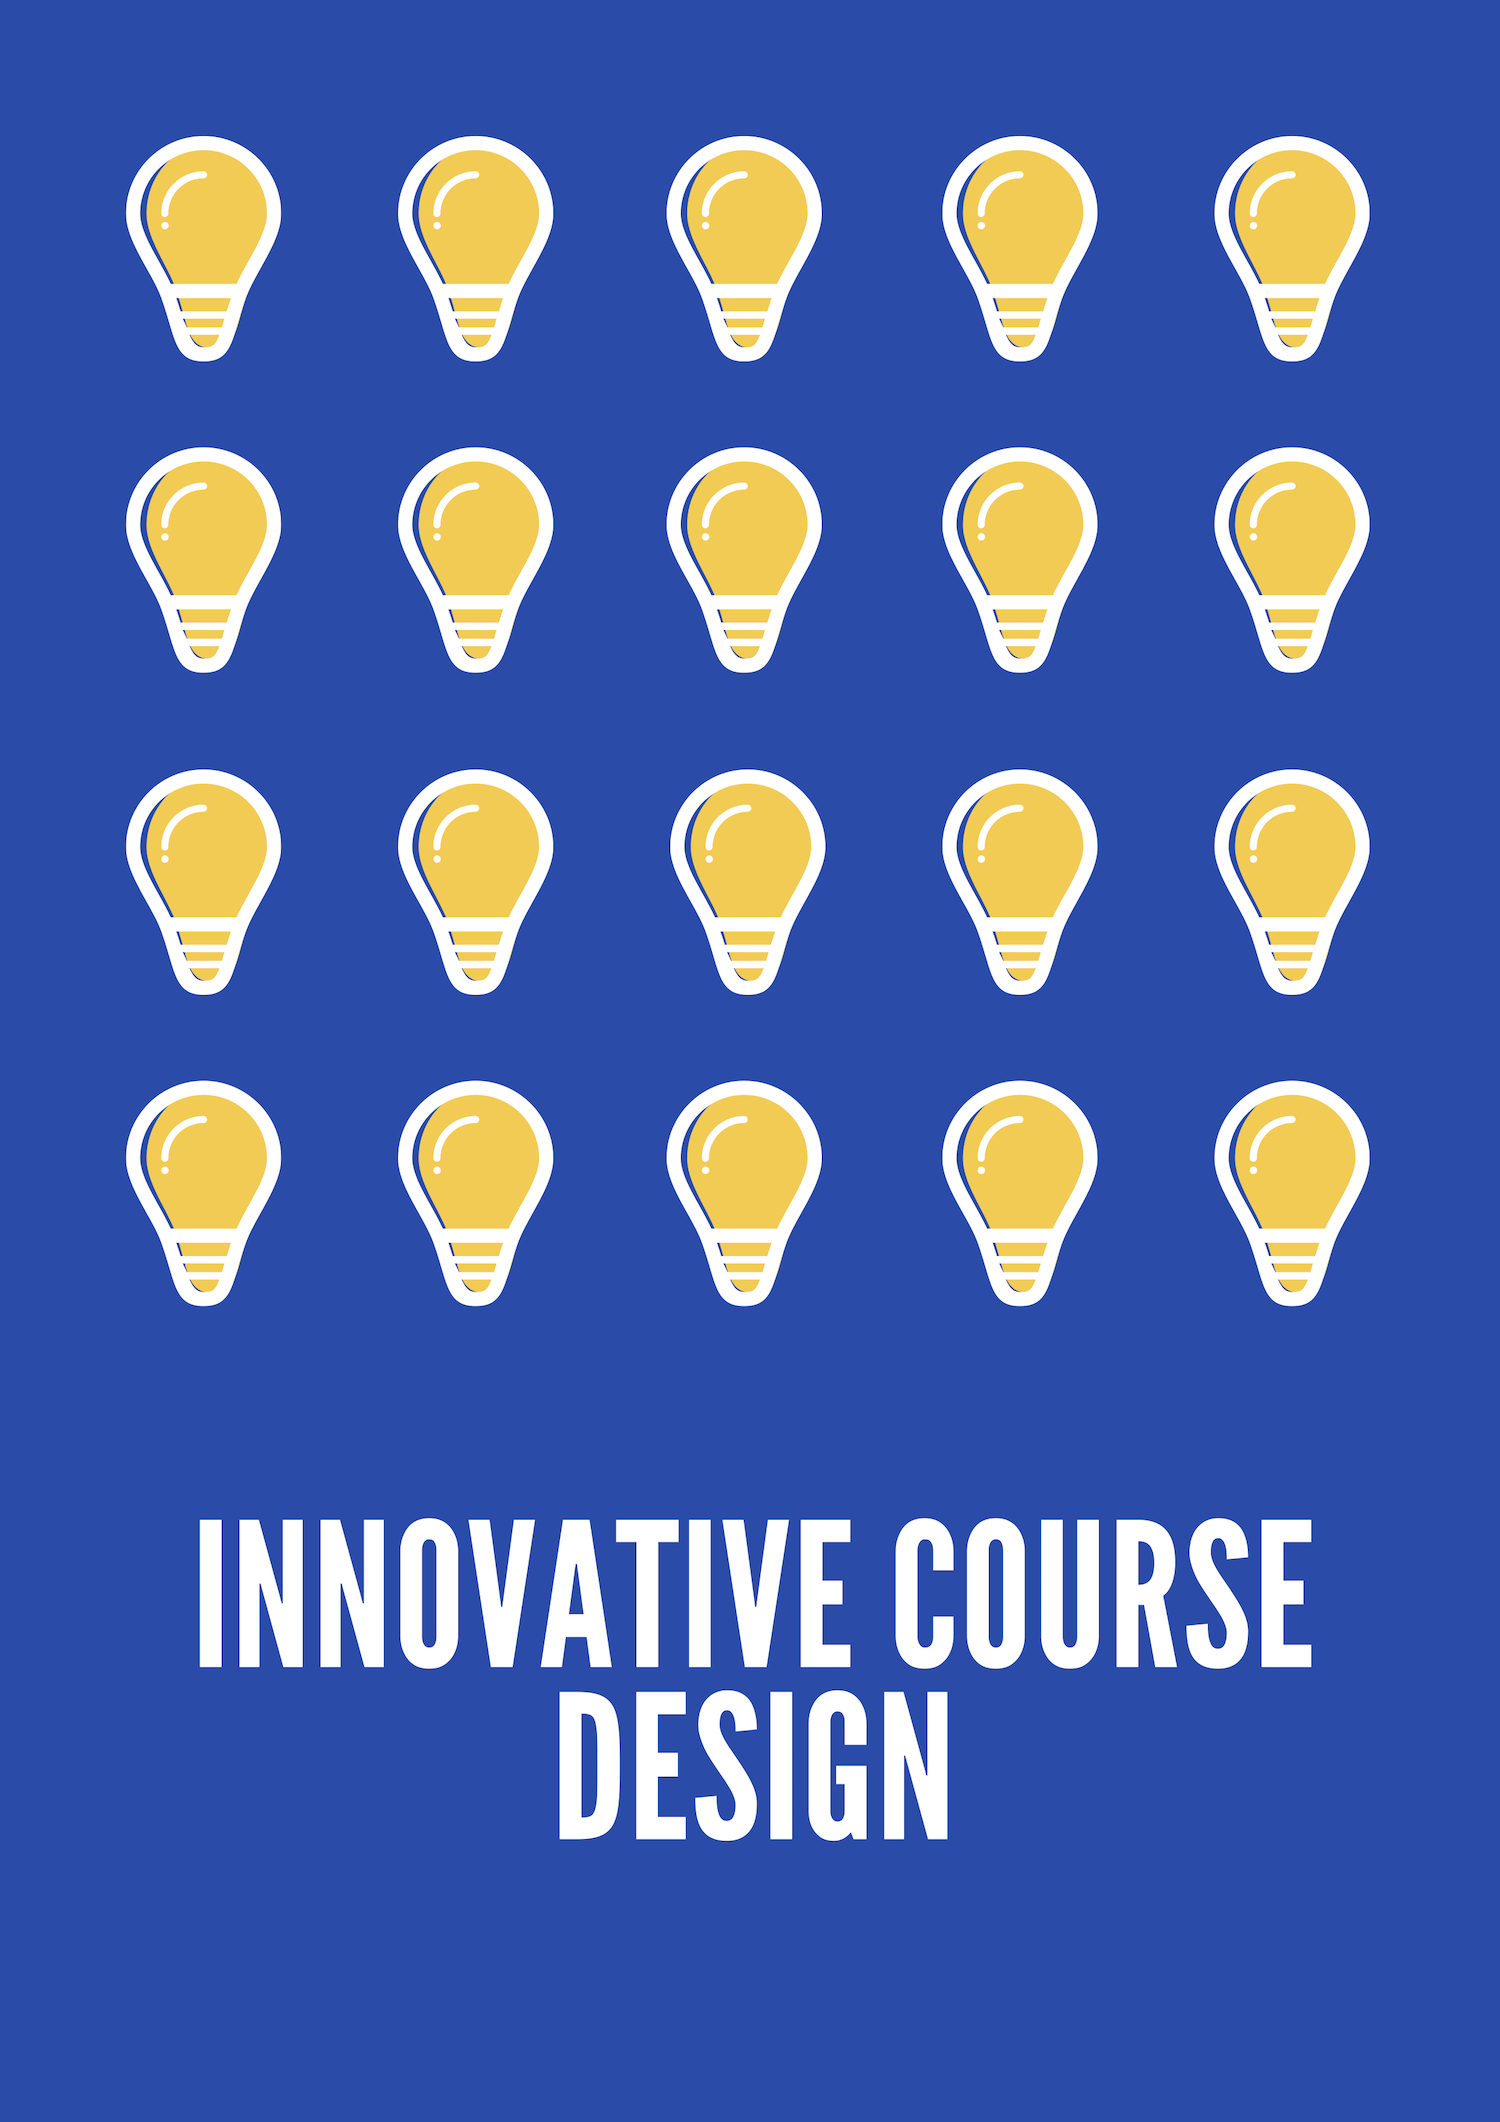 Innovative Course Design Posters